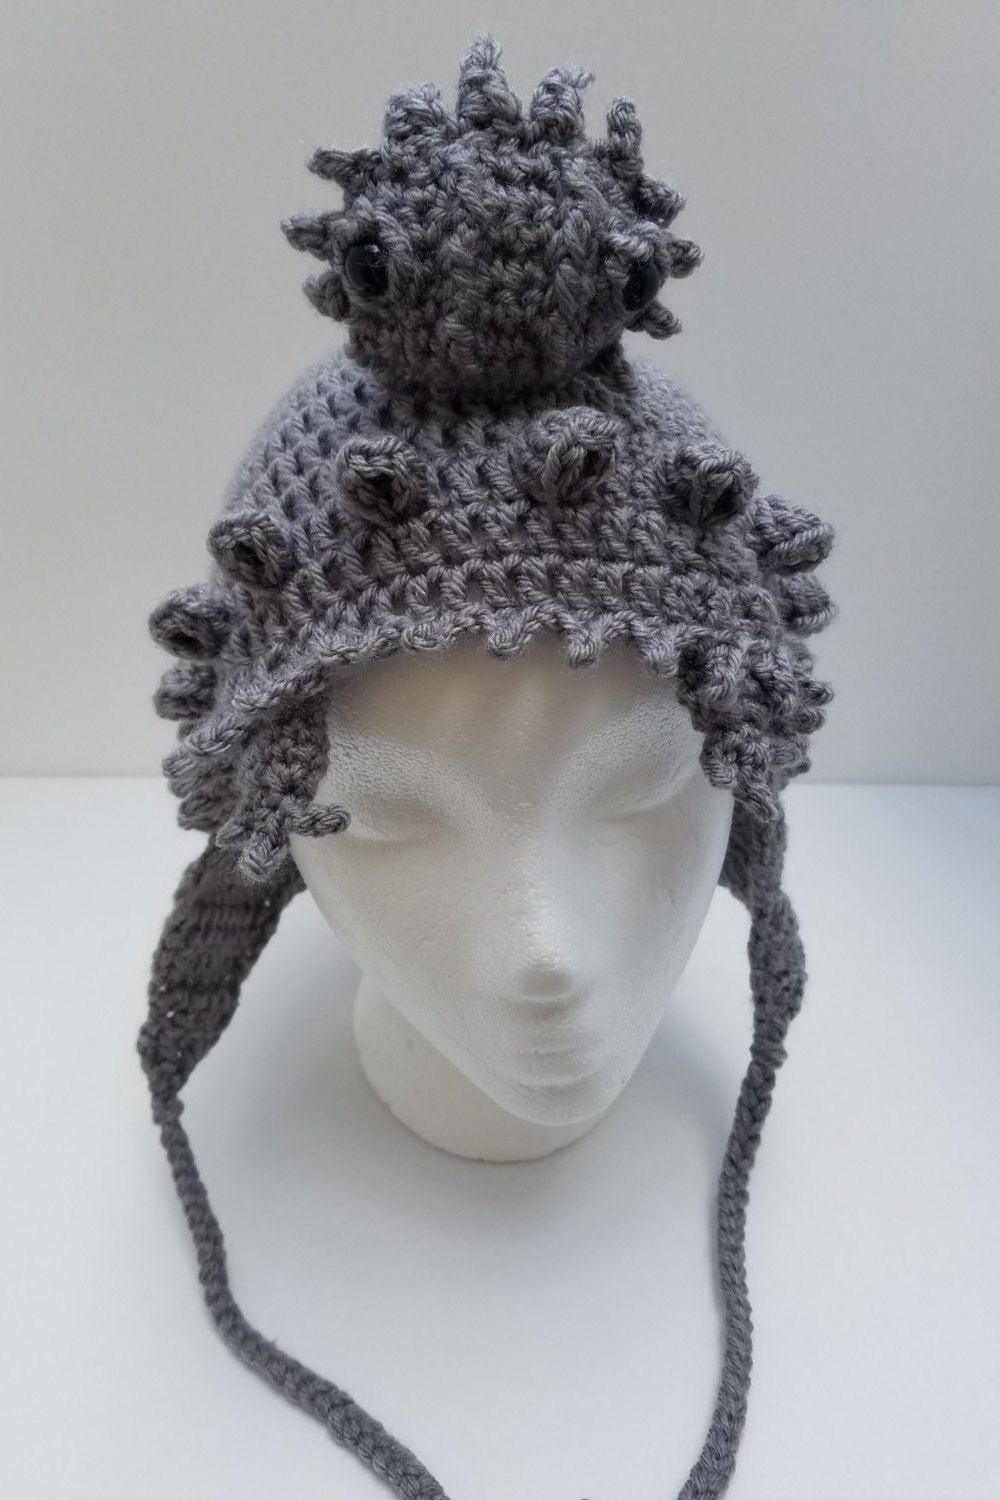 Horny toad hat crochet pattern texas horned lizard hat crochet horny toad hat crochet pattern texas horned lizard hat crochet pattern bankloansurffo Images